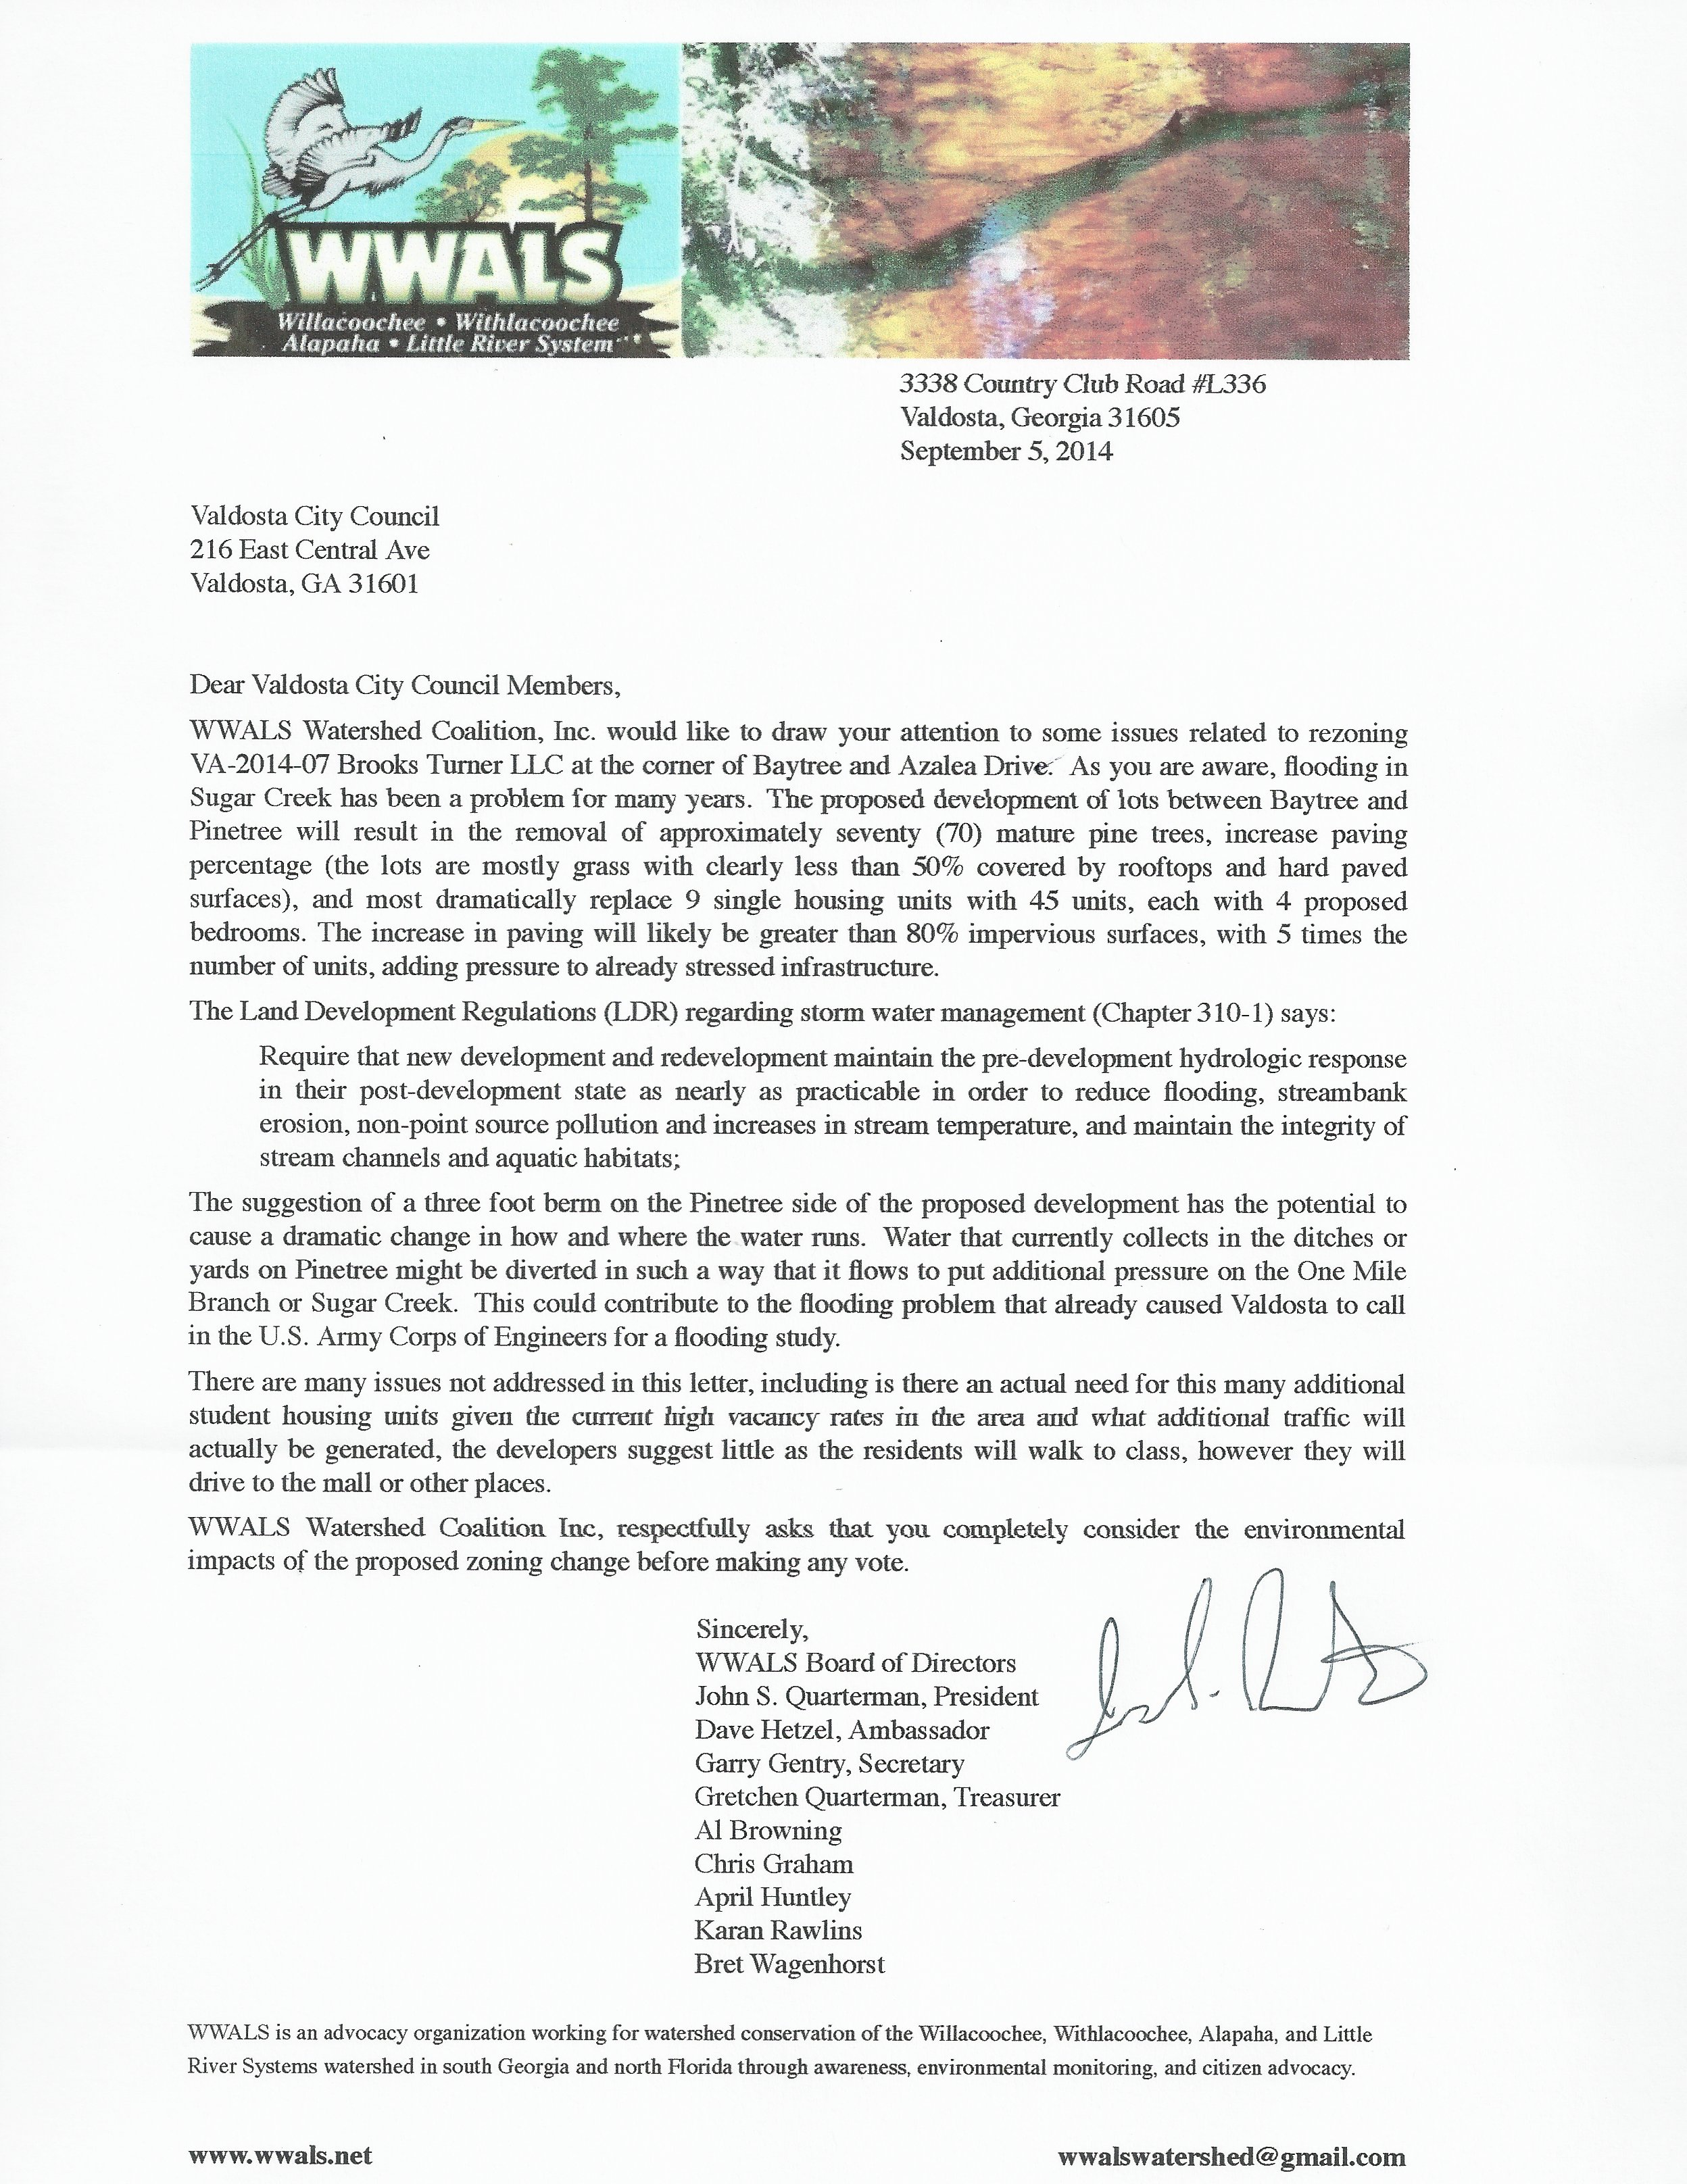 2496x3232 Letter, in Rezoning Water Issues in Valdosta, by WWALS, for WWALS.net, 8 September 2014